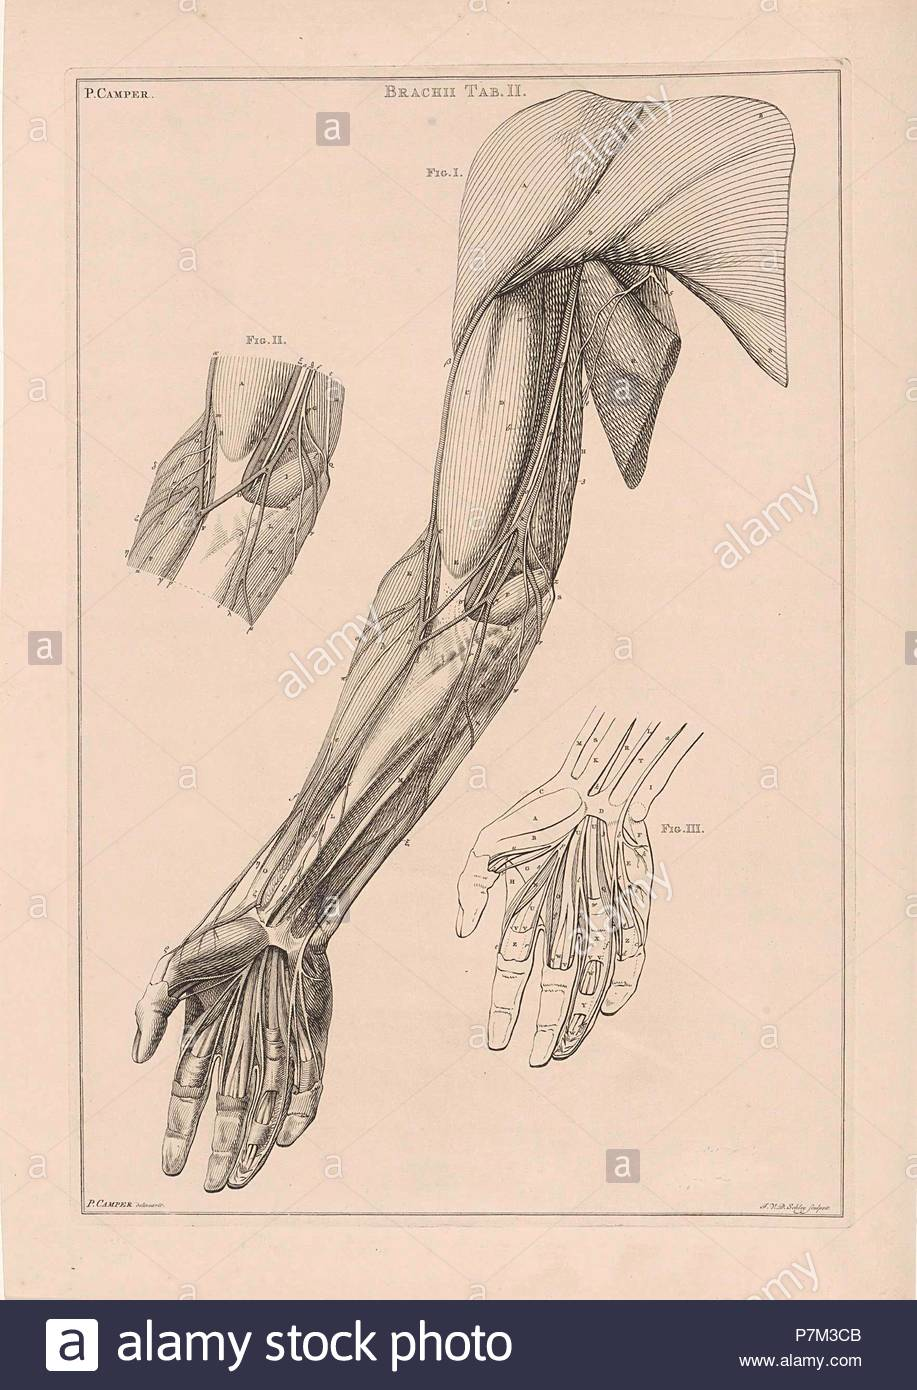 Anatomy Of The Arm Hand And Shoulder With Numbers Jacob Van Der